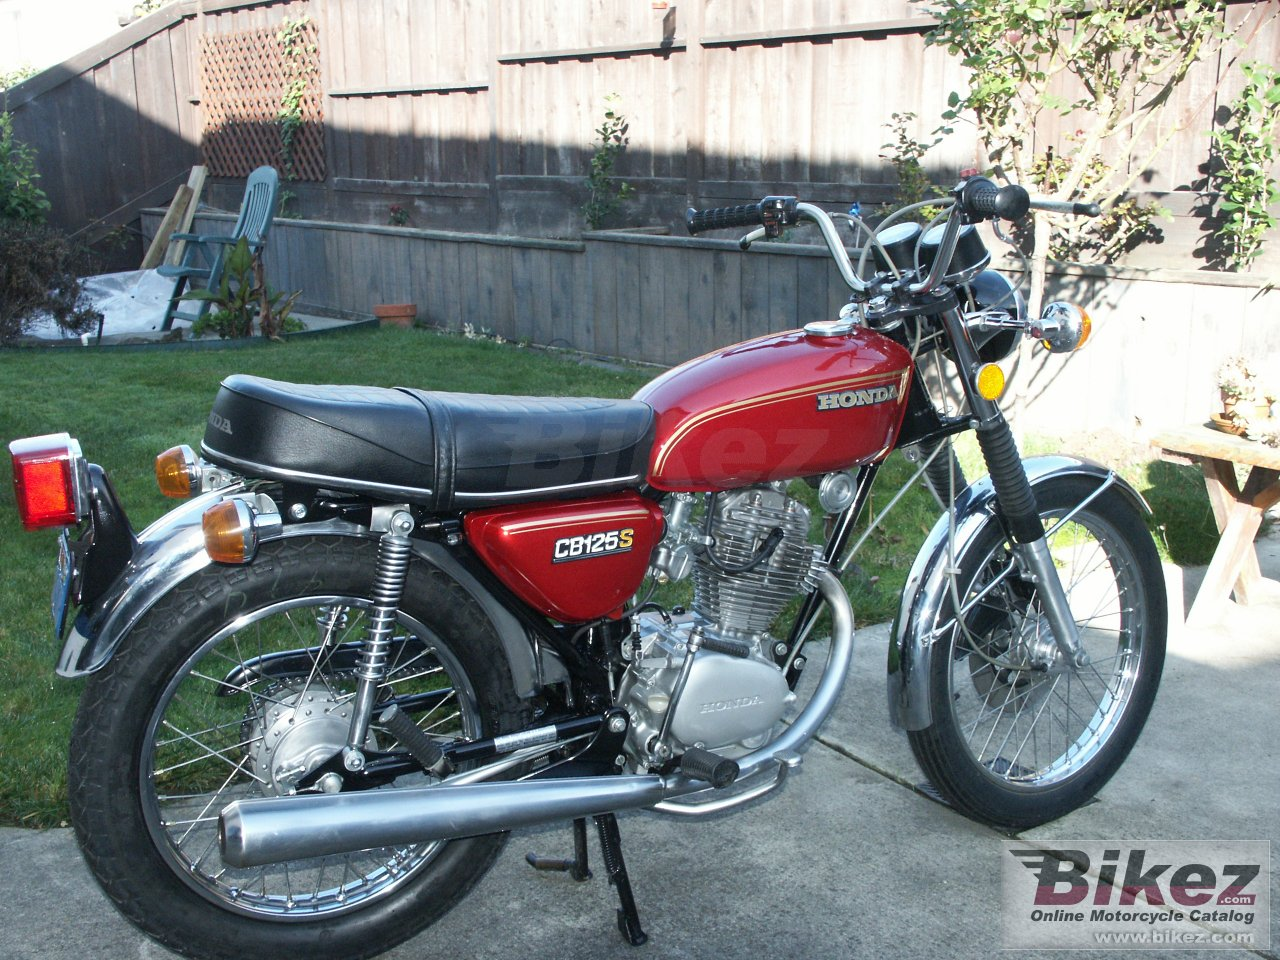 Big  cb 125 s picture and wallpaper from Bikez.com